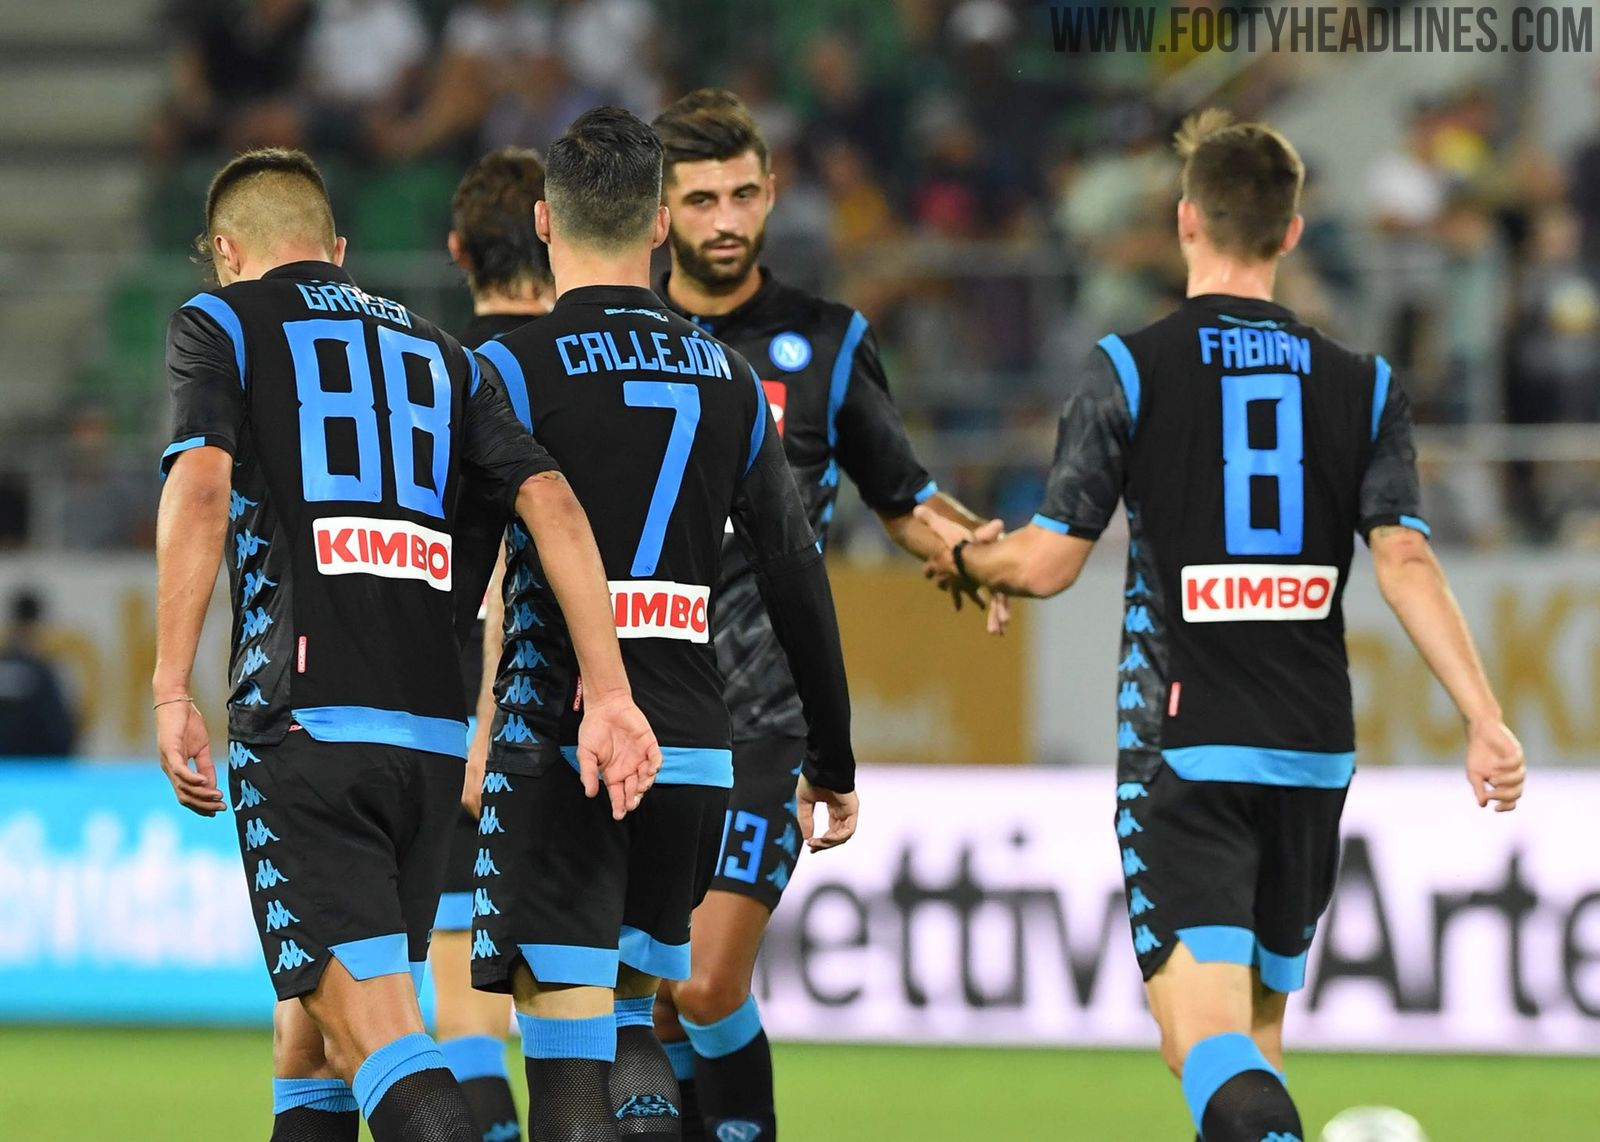 9e826678a Napoli 18-19 Away Kit Released - Footy Headlines